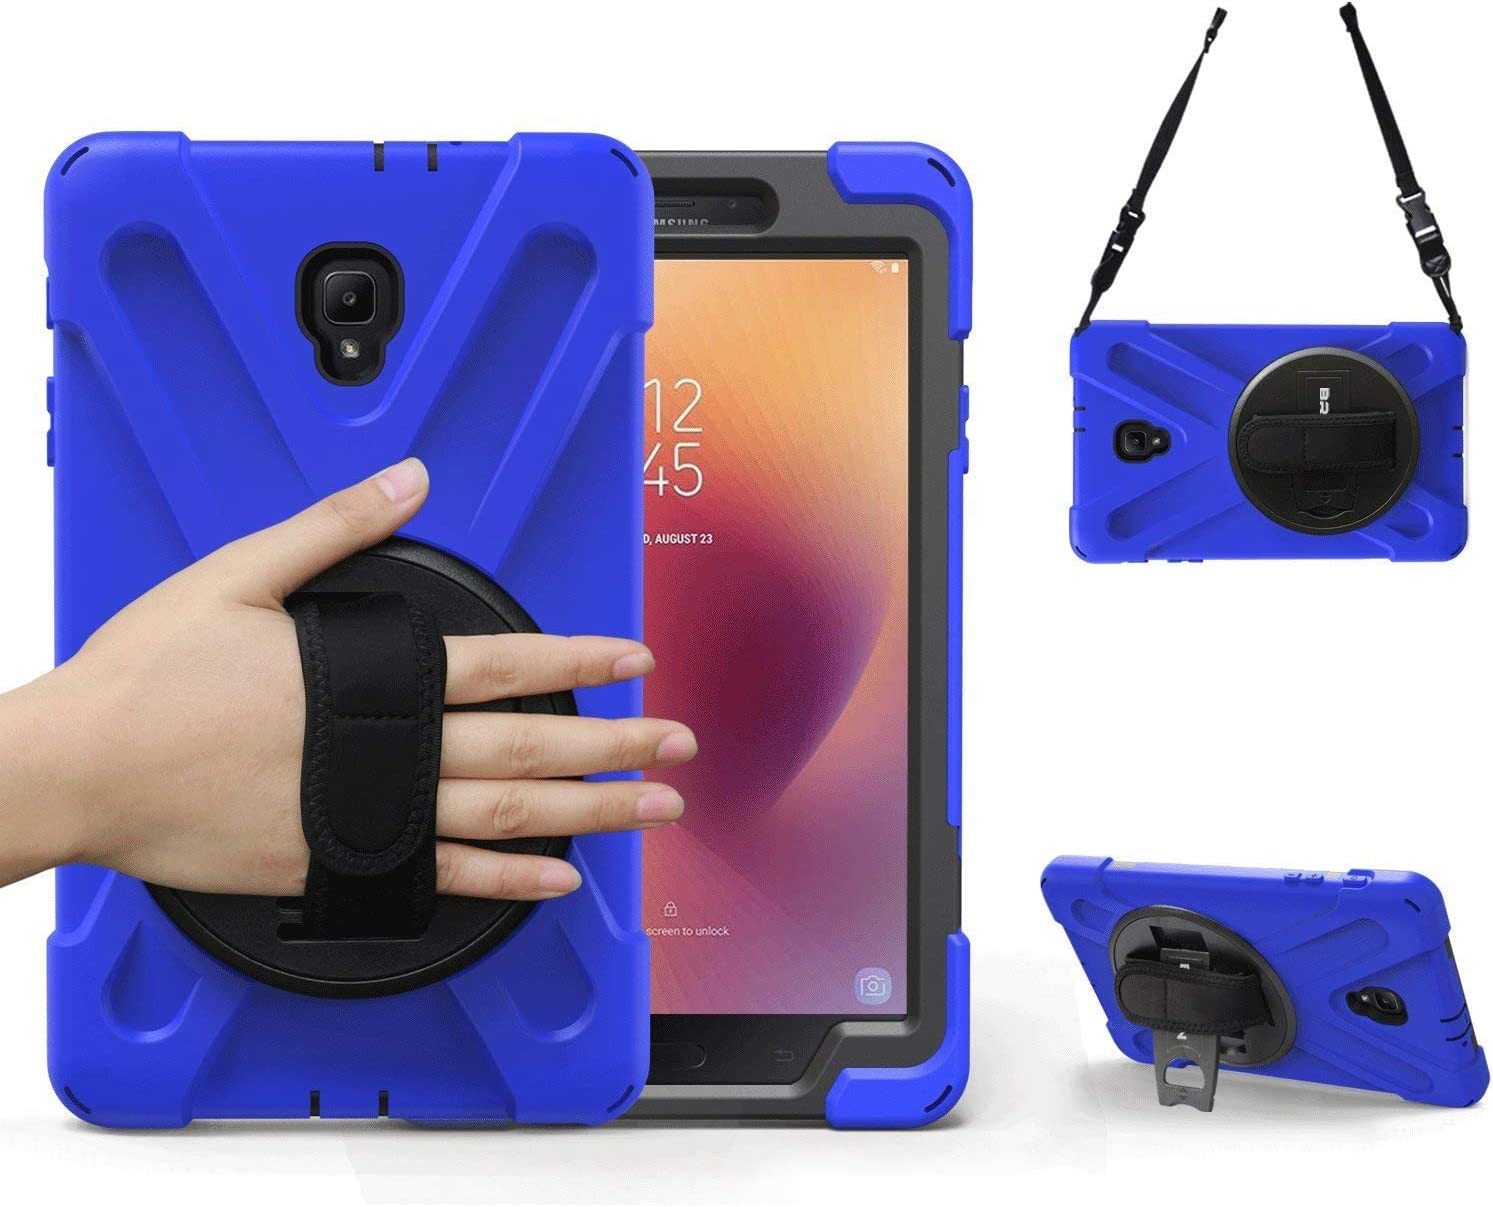 Galaxy Tab A 8.0 2017 Case, BRAECN Three Layer Drop Protection Rugged Protective Heavy Duty Tablet Case with a 360 Degree Swivel Stand/Hand Strap/Shoulder Strap for Tab 8.0 A SM-T380/T385 (Blue